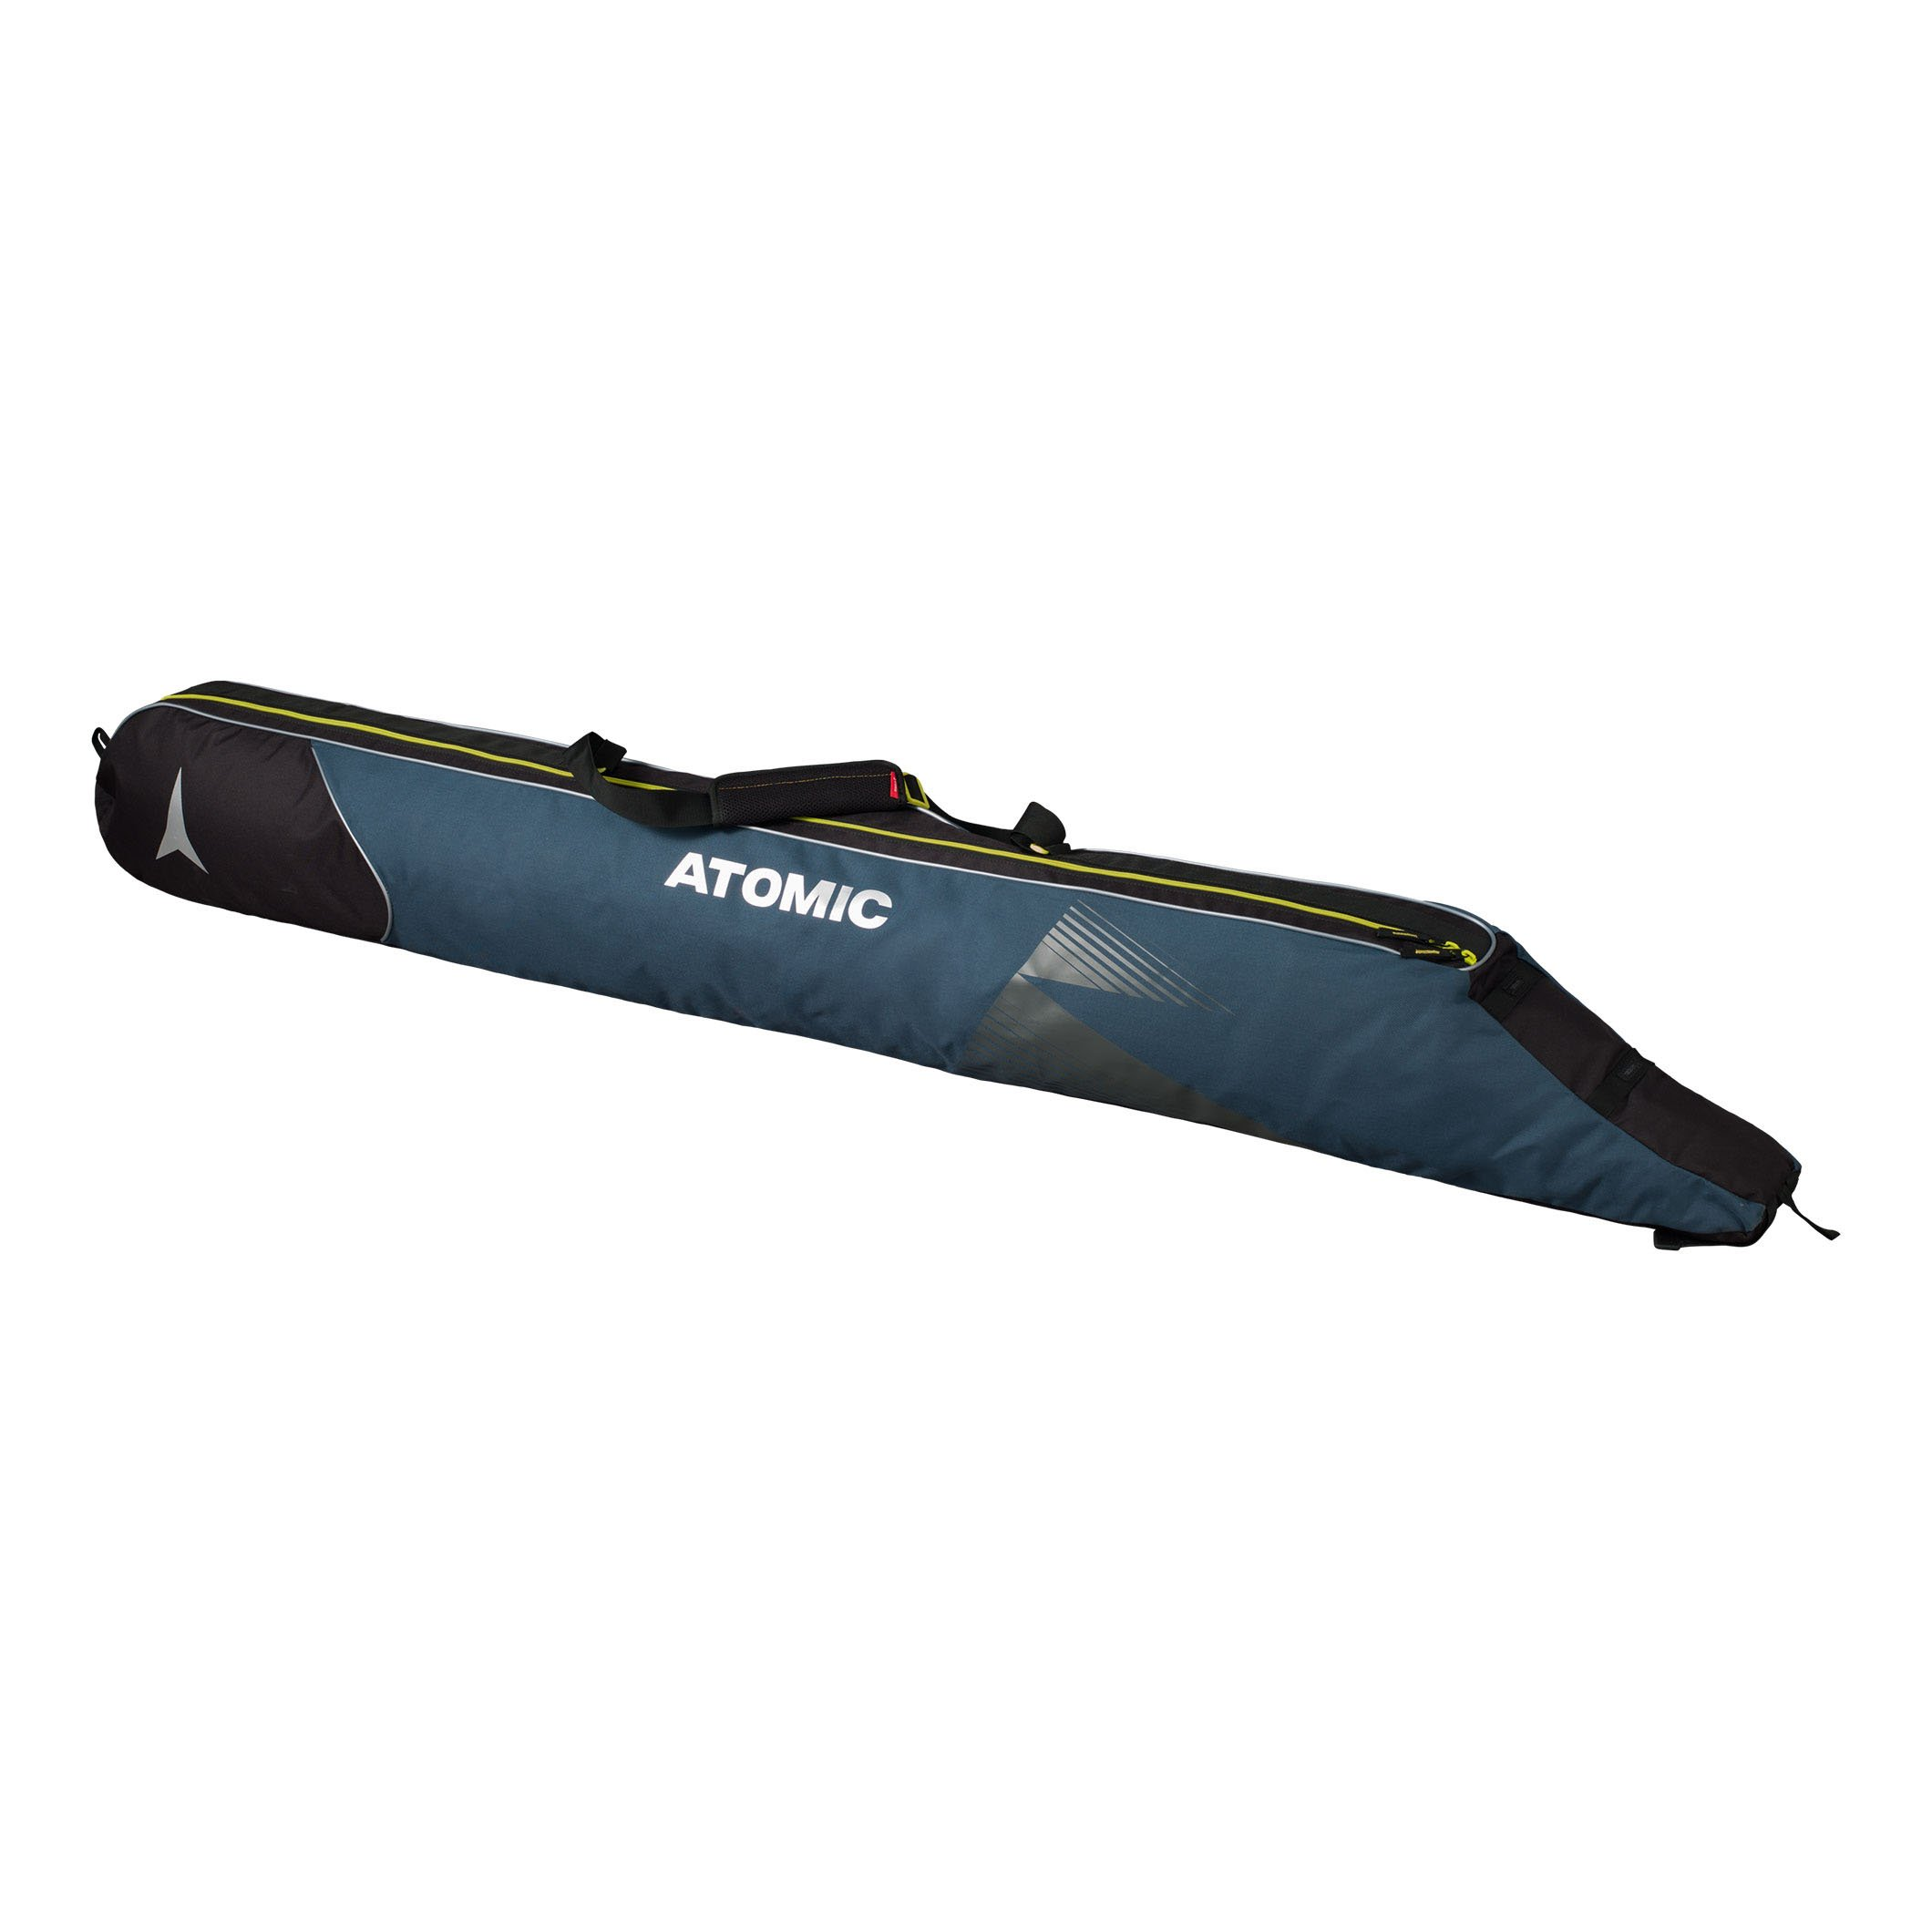 Atomic Ski bag Shade 2016/2017